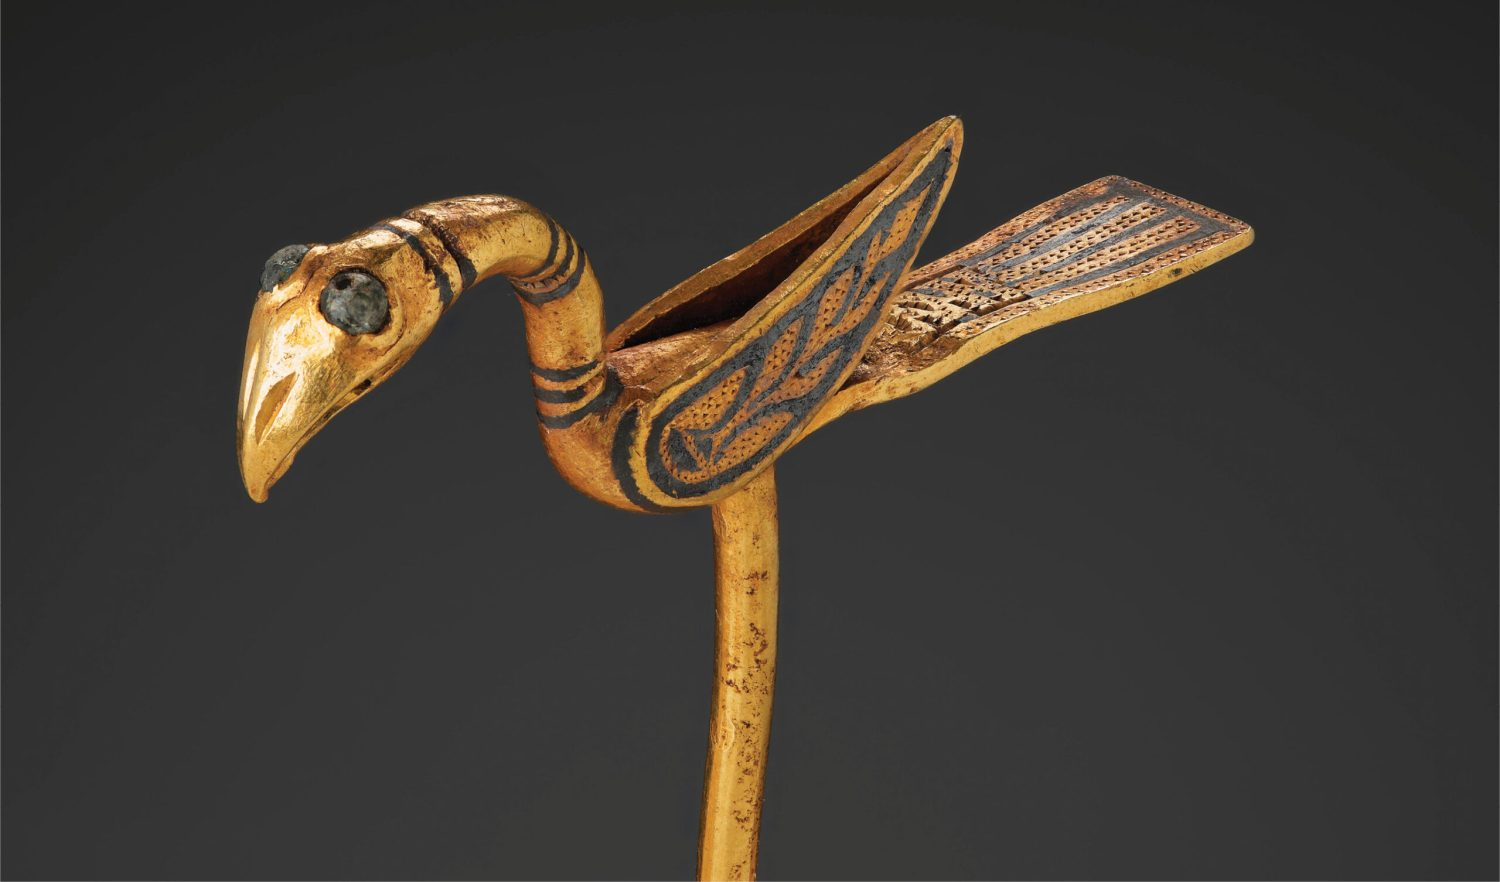 above The conserved gold bird pin from the Galloway Hoard.